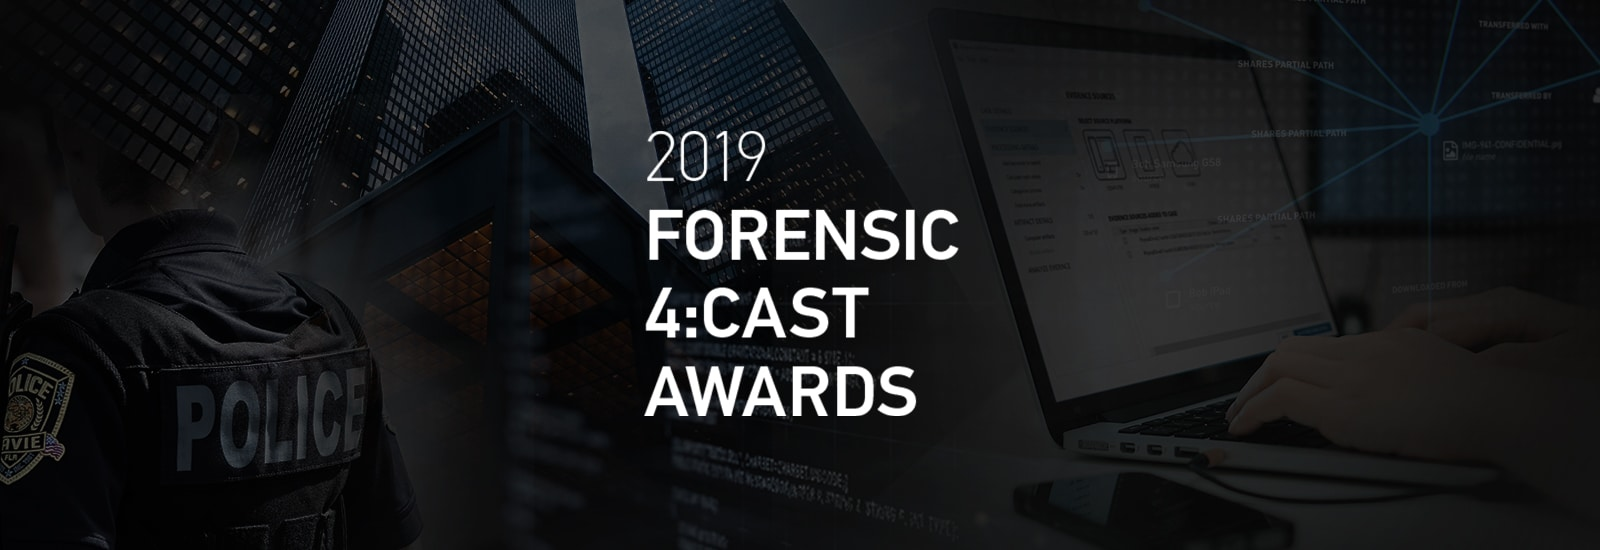 Who We're Nominating for This Year's Forensic 4:cast Awards